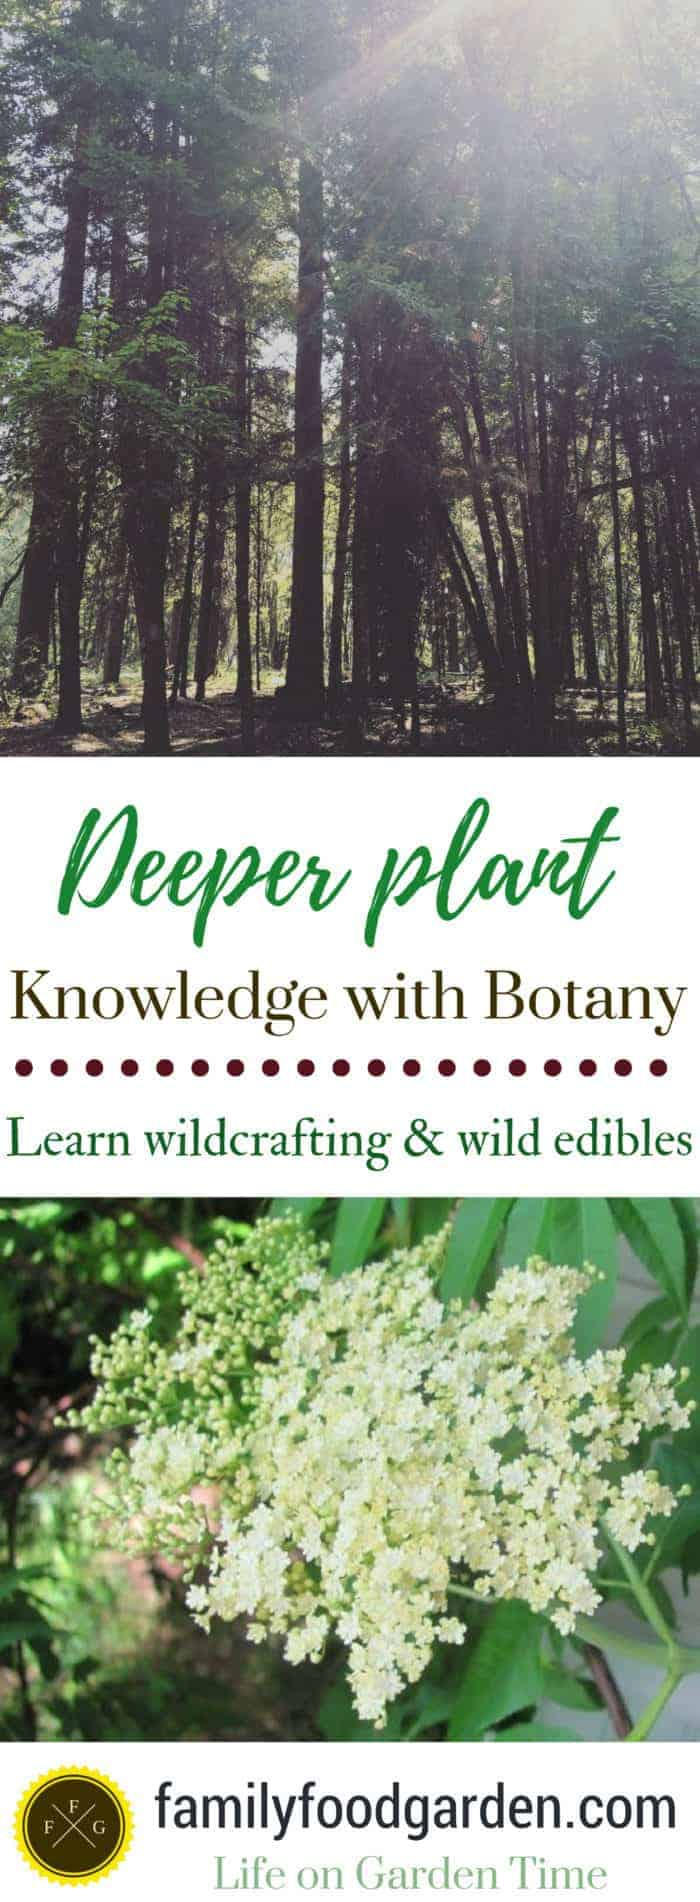 Learn botany and edible wild plants